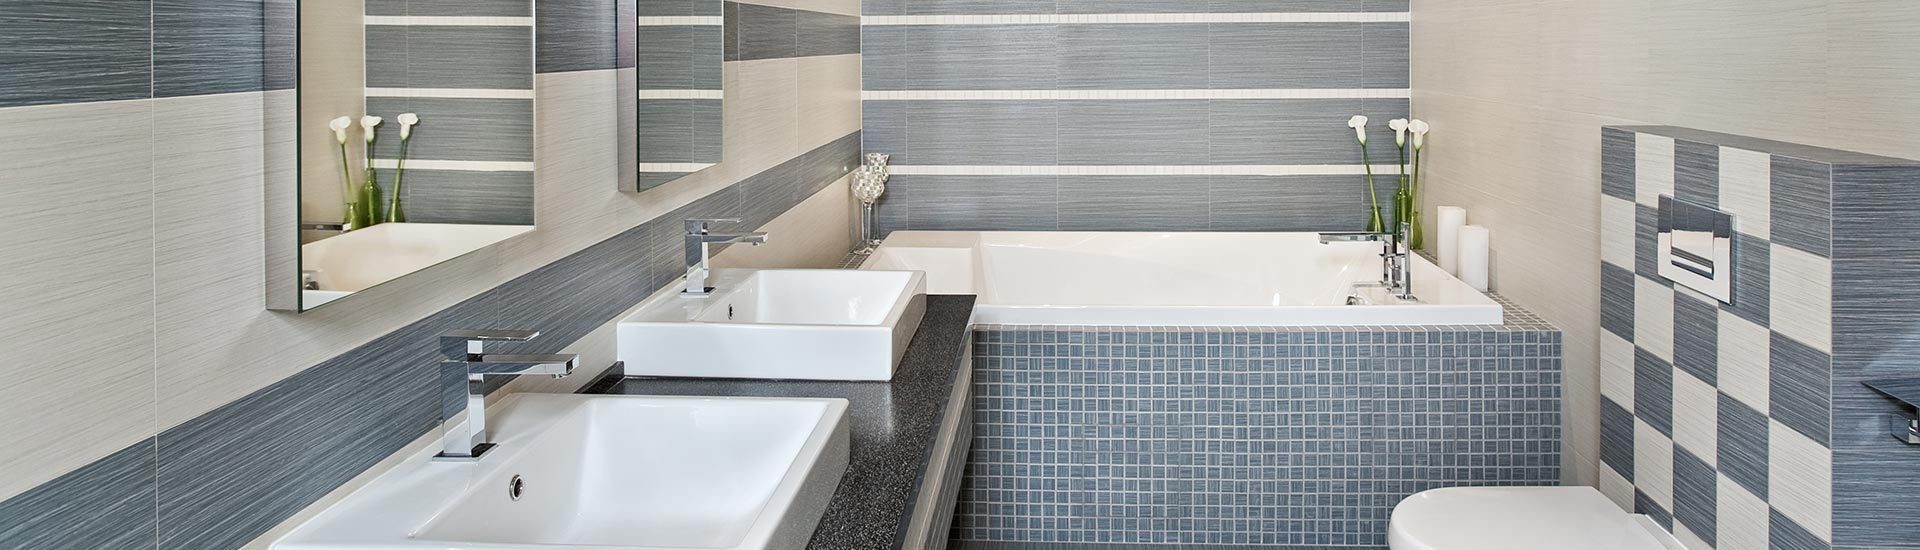 Custom kitchen cabinets and renovation in paradise las - Bathroom remodeling las vegas nv ...